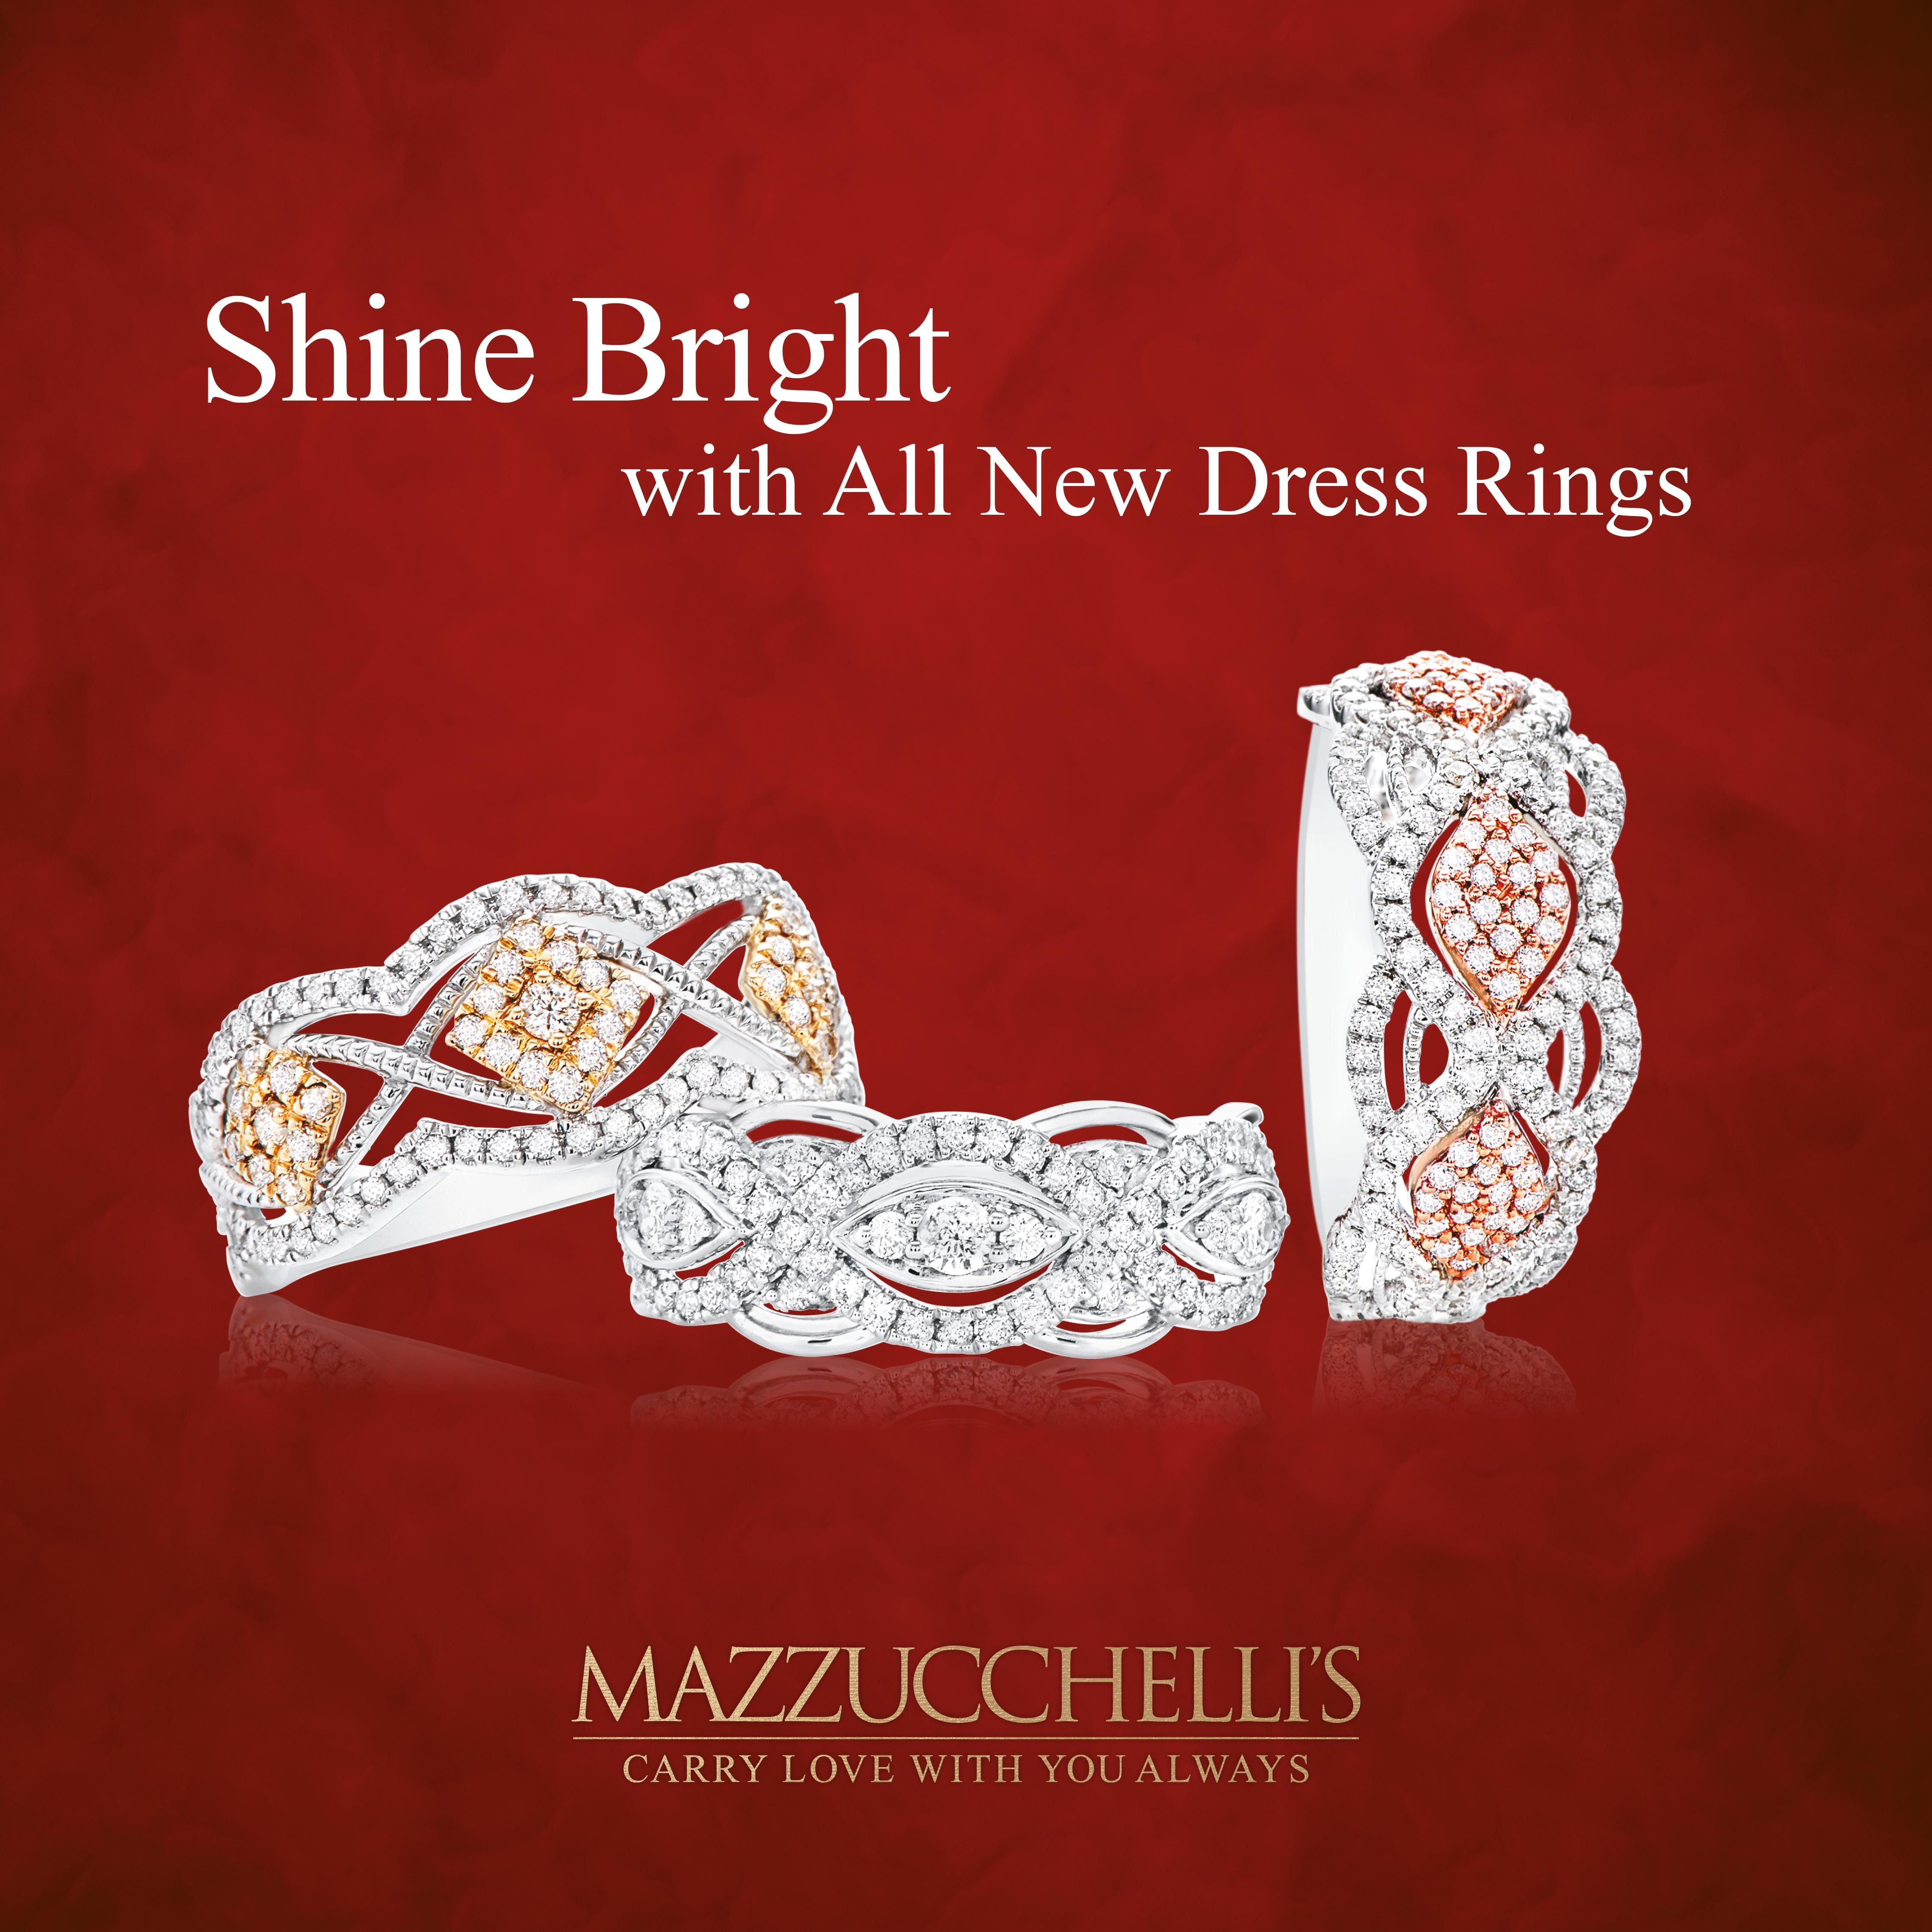 Some of our gorgeous new Dress Rings just in time for Christmas